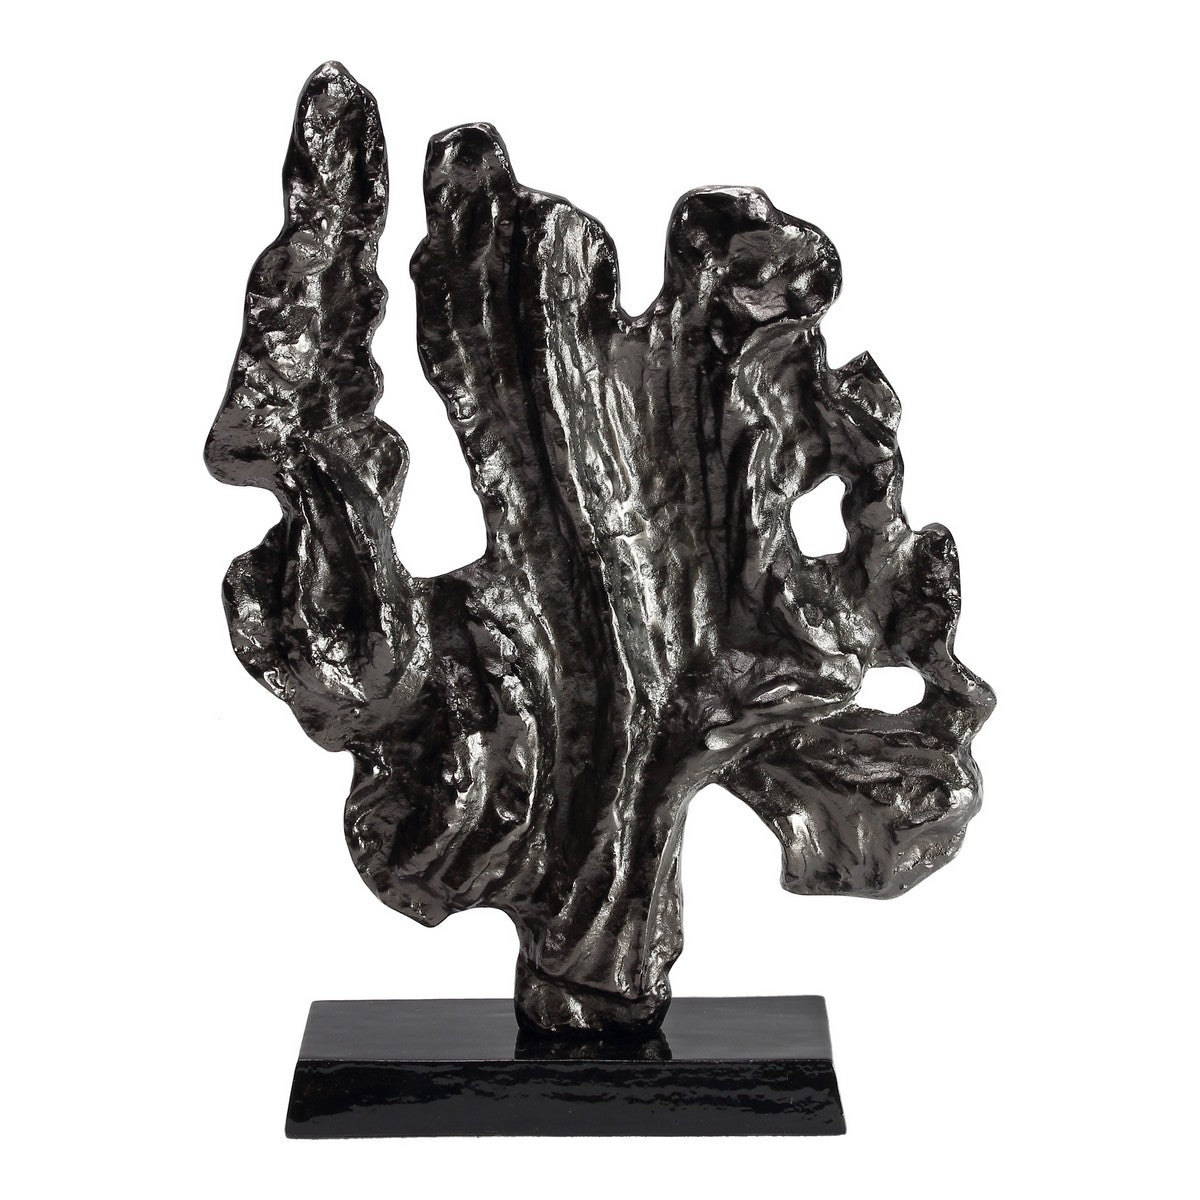 Moe's Home Collection Coral Sculpture Large Black Nickel - IX-1115-02 - Moe's Home Collection - Art - Minimal And Modern - 1